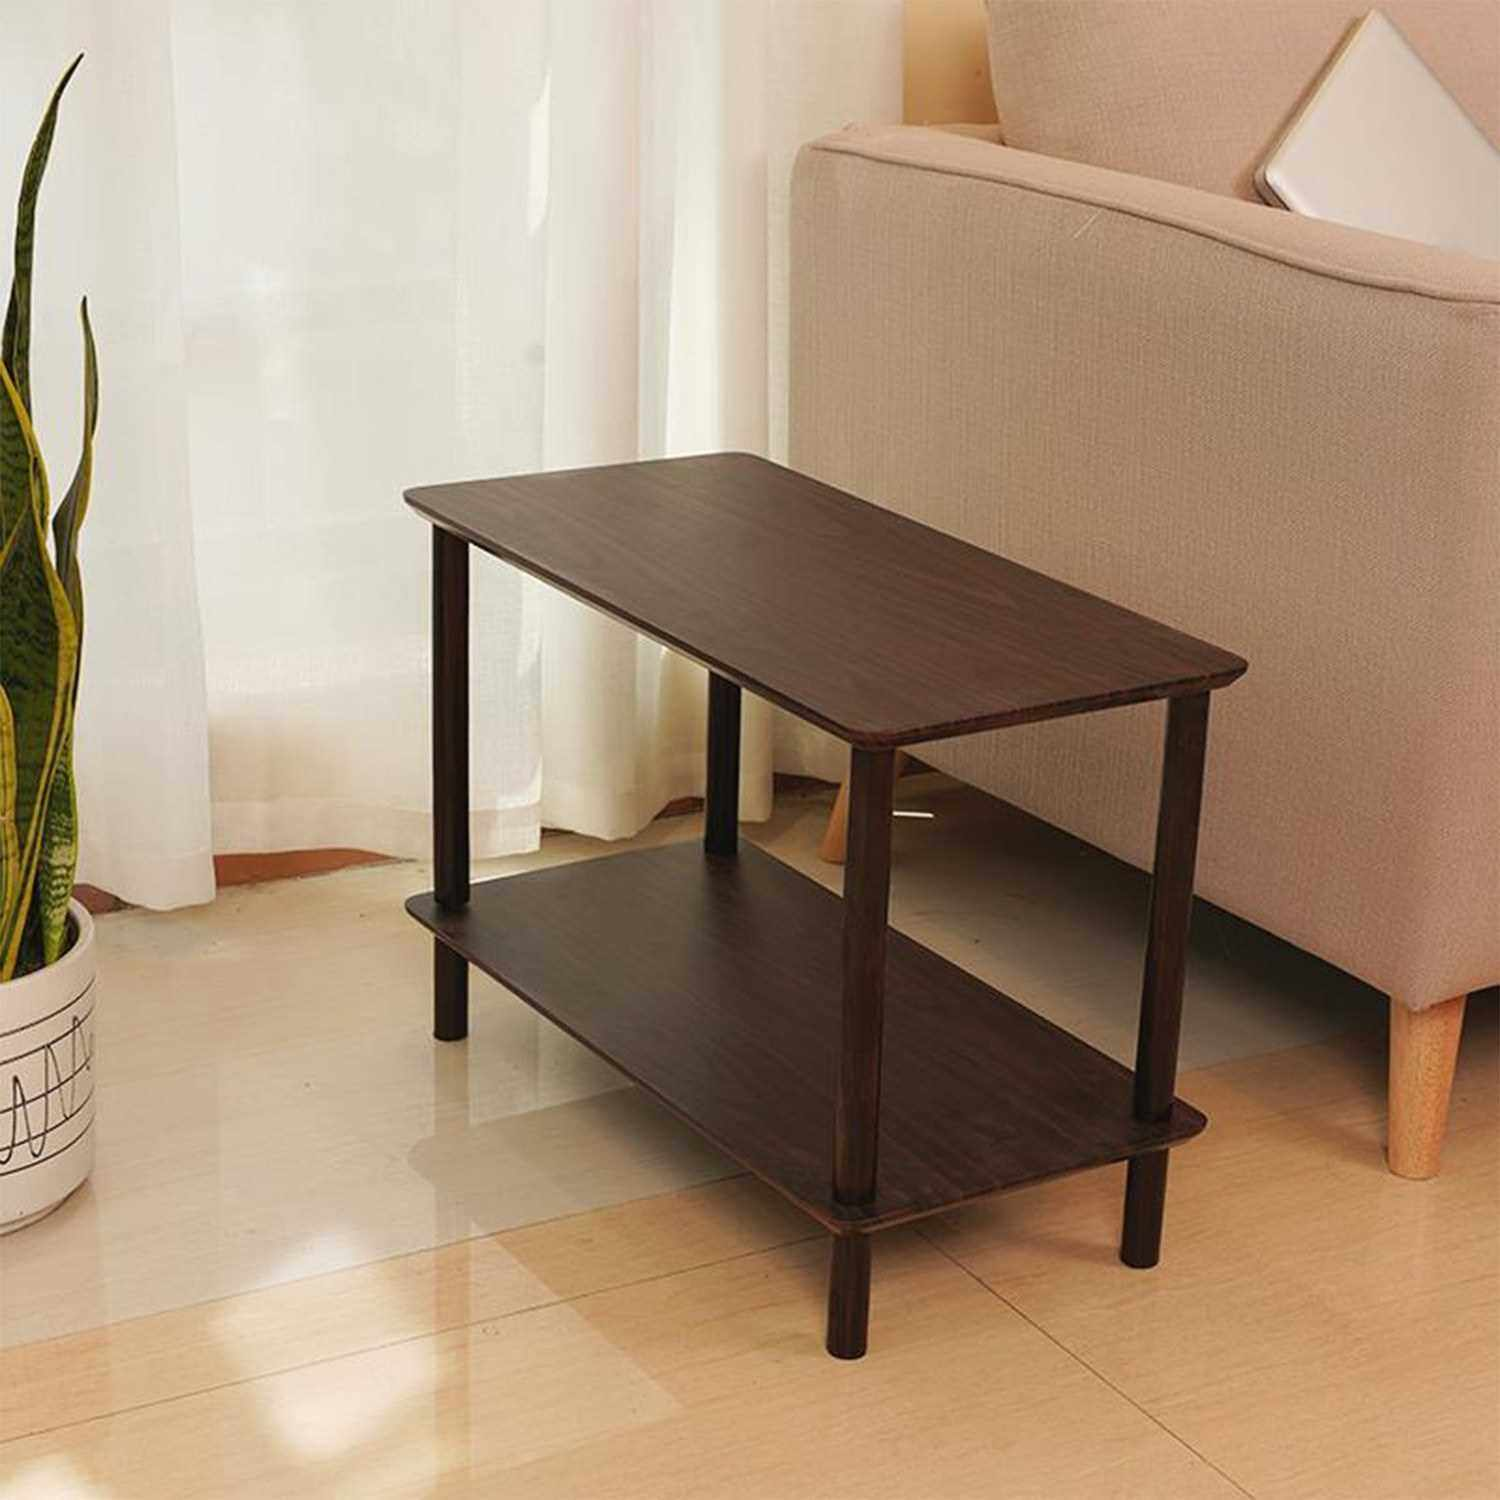 2-Tier End Table Coffee Side Table Nightstand with Open Design Wood Grain Pattern Home Decor Furniture for Living Room Bedroom Balcony 40*30*42cm (Black)